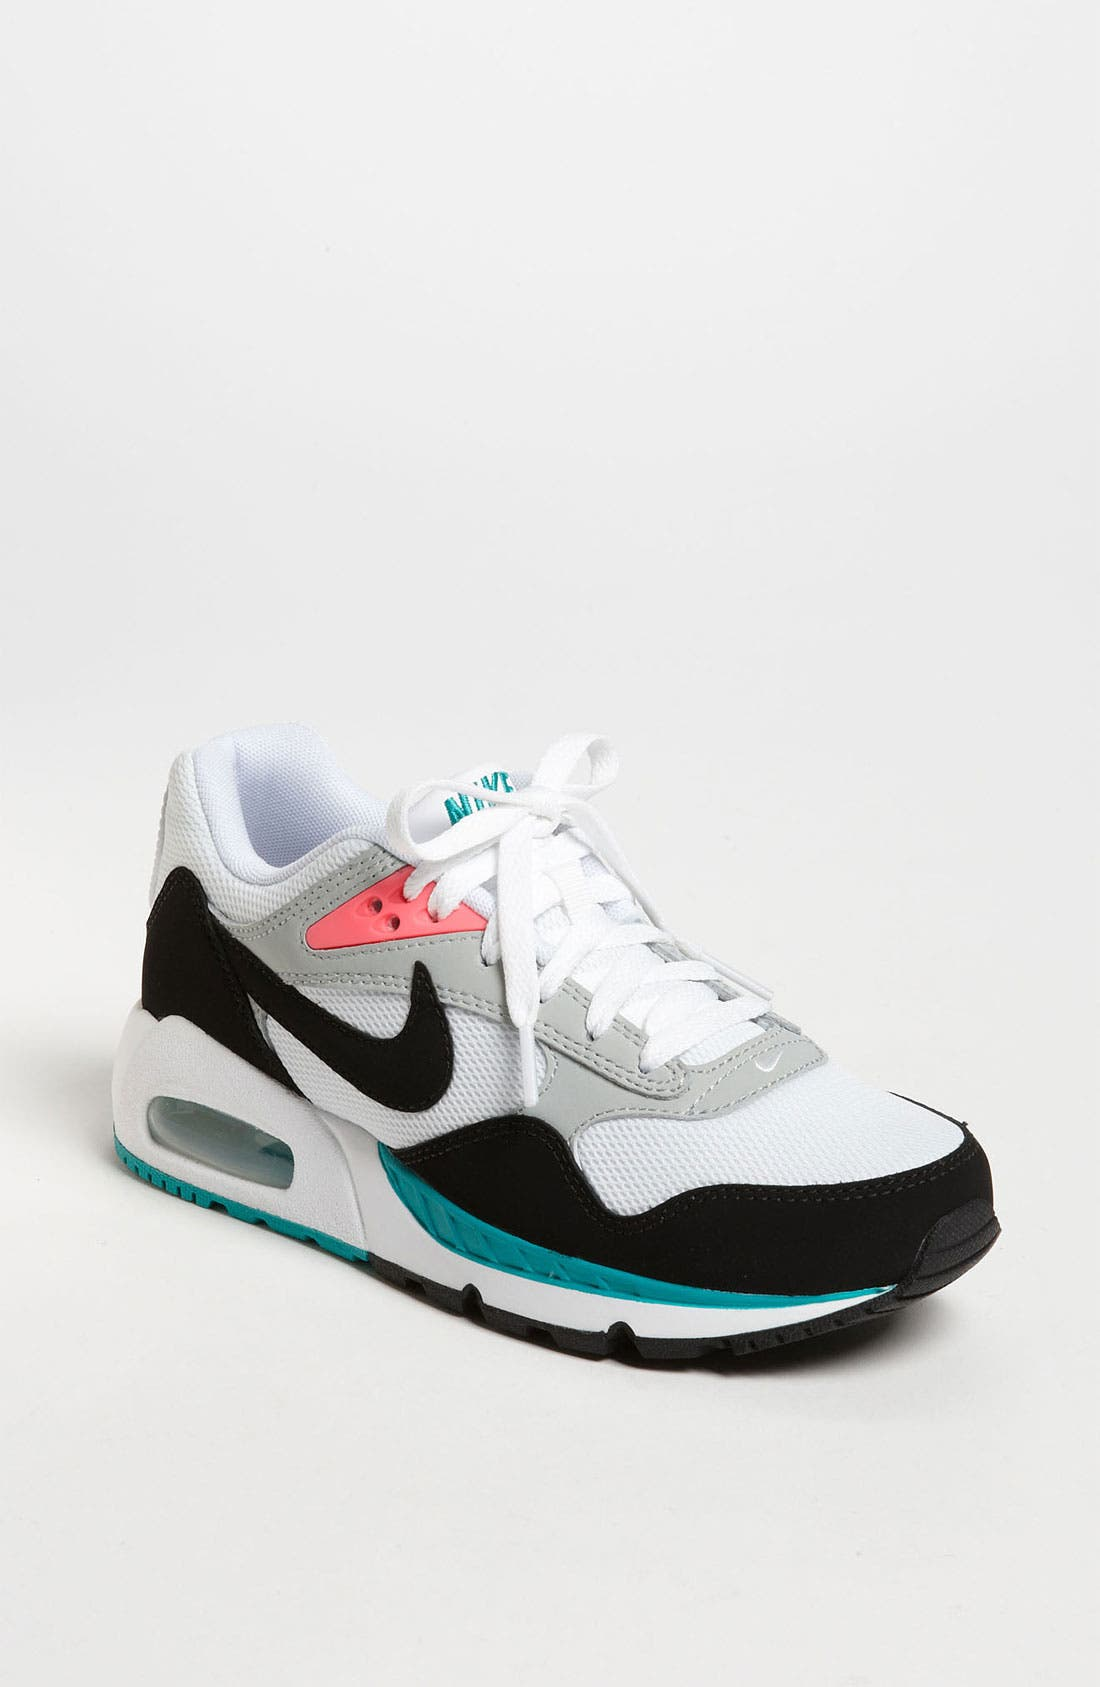 Alternate Image 1 Selected - Nike 'Air Max Sunrise' Sneaker (Women)